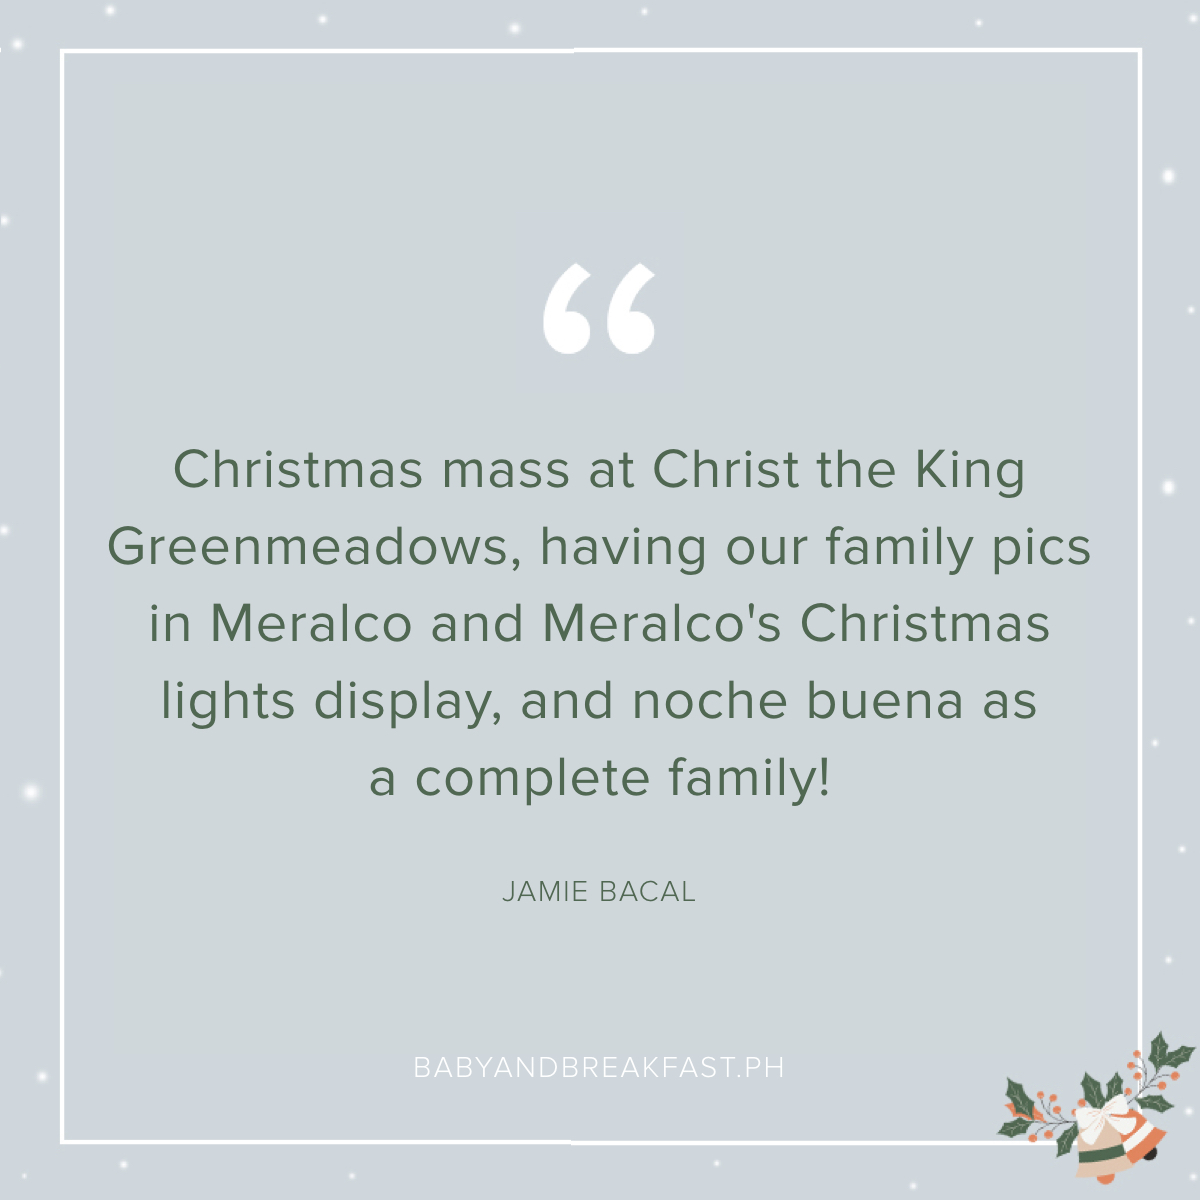 Christmas mass at Christ the King Greenmeadows, having our family pics in Meralco and Meralco's Christmas lights display, and noche buena as a complete family! - Jamie Bacal